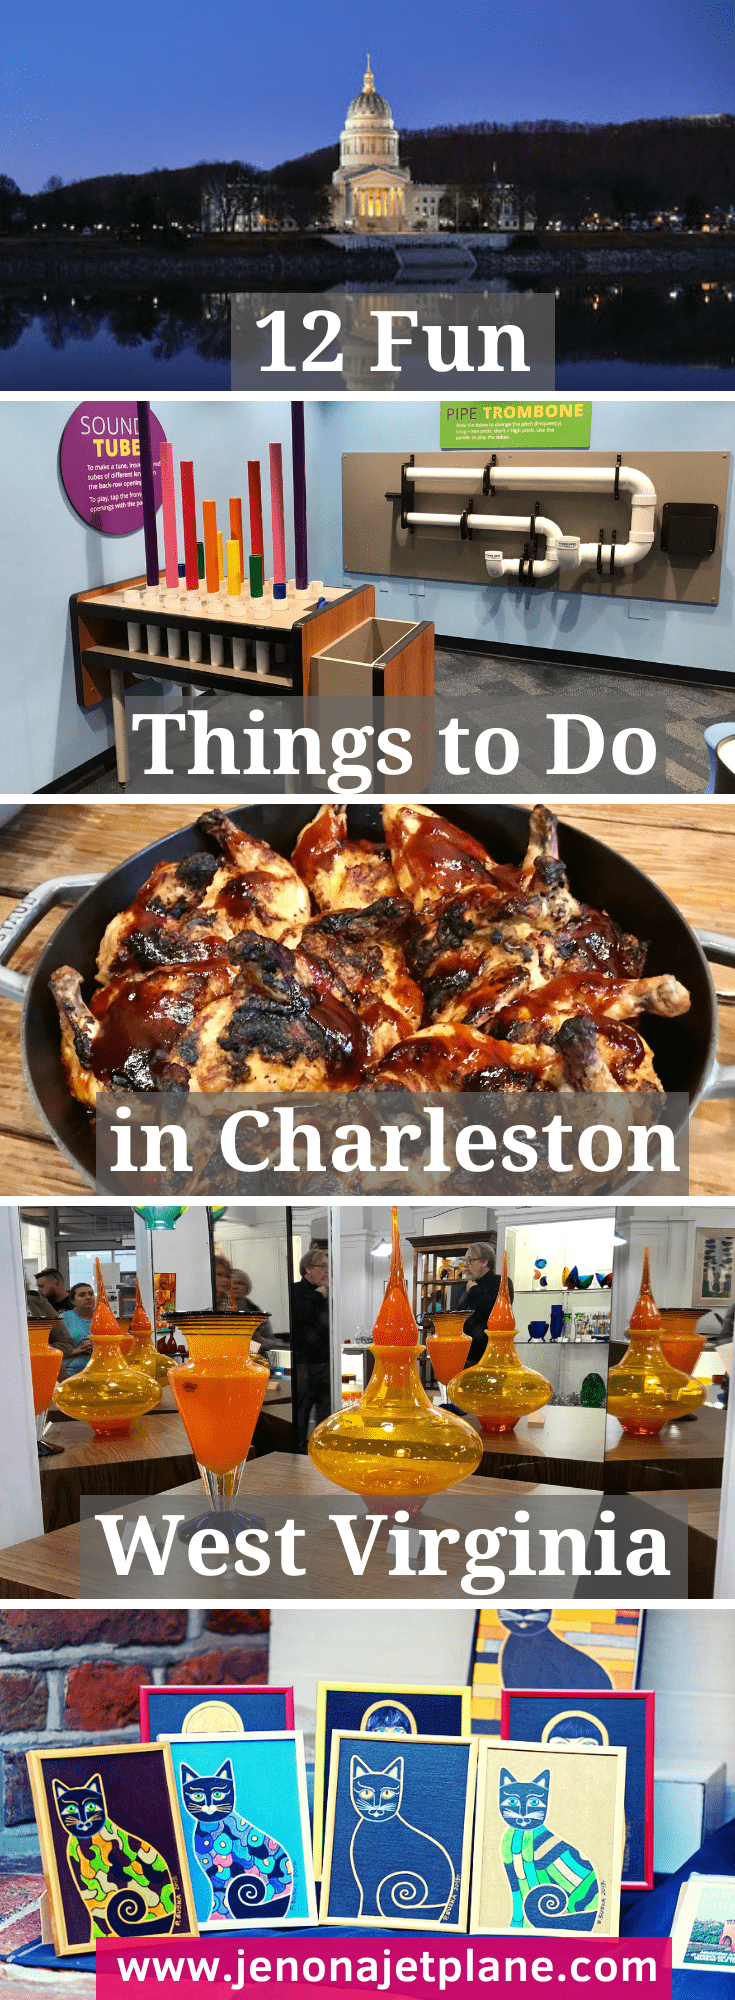 West Virginia's capital city is a hidden gem. Here's 12 fun things to do in Charleston, WV! #westvirginia #charlestonwestvirginia #charlestonwv #visitwestvirginia